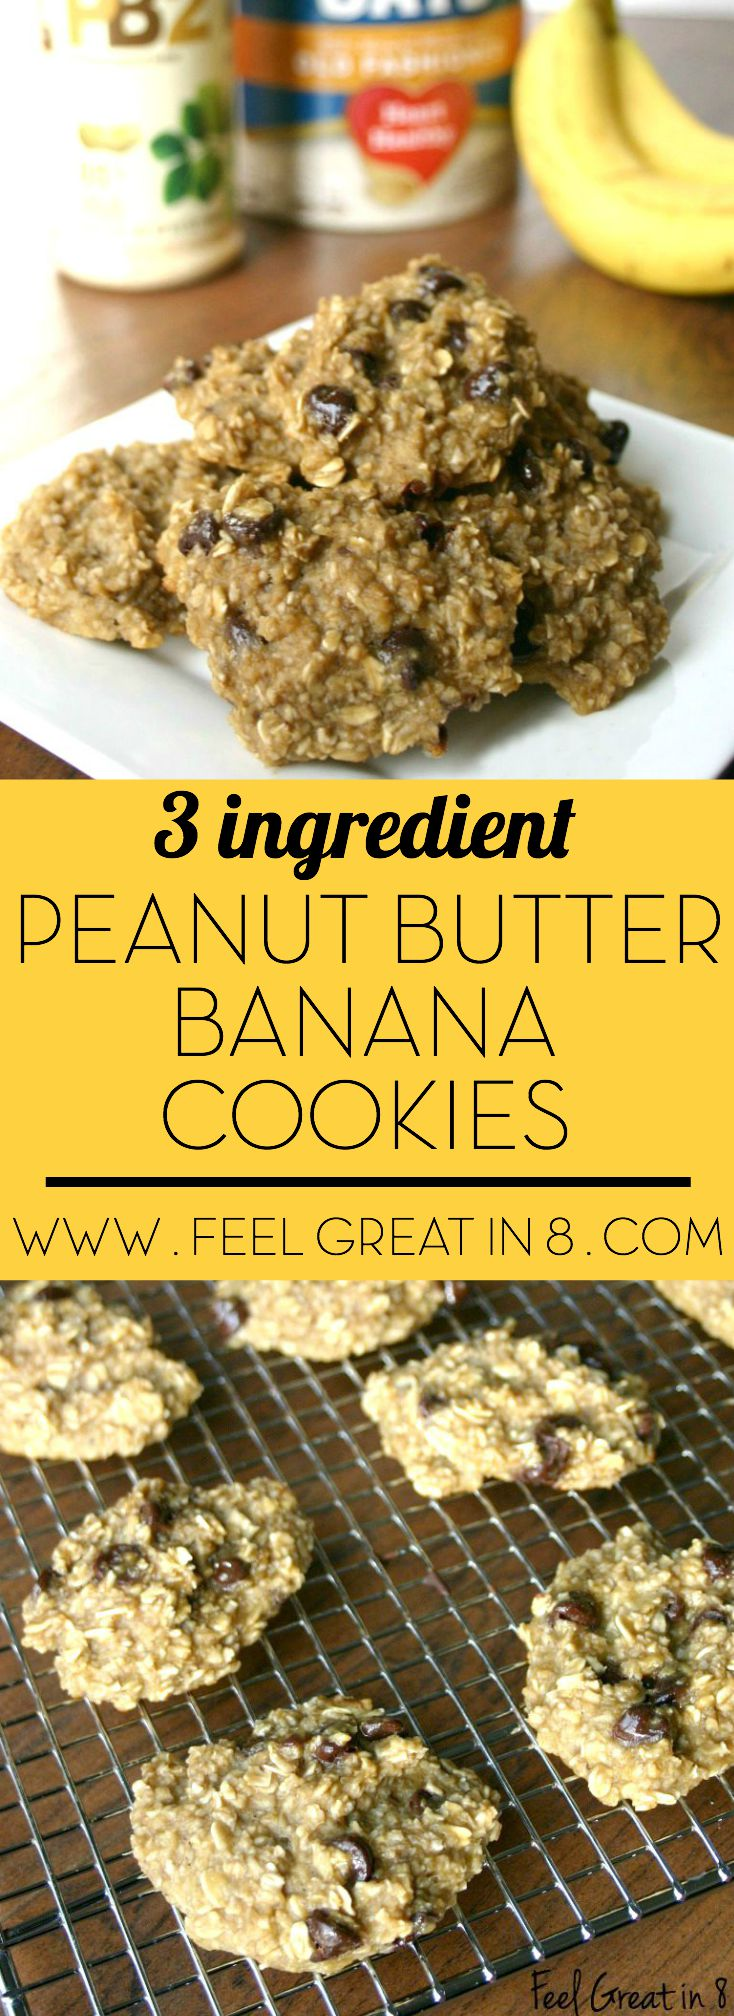 3 Ingredient Peanut Butter Banana Cookies Feel Great In 8 Blog